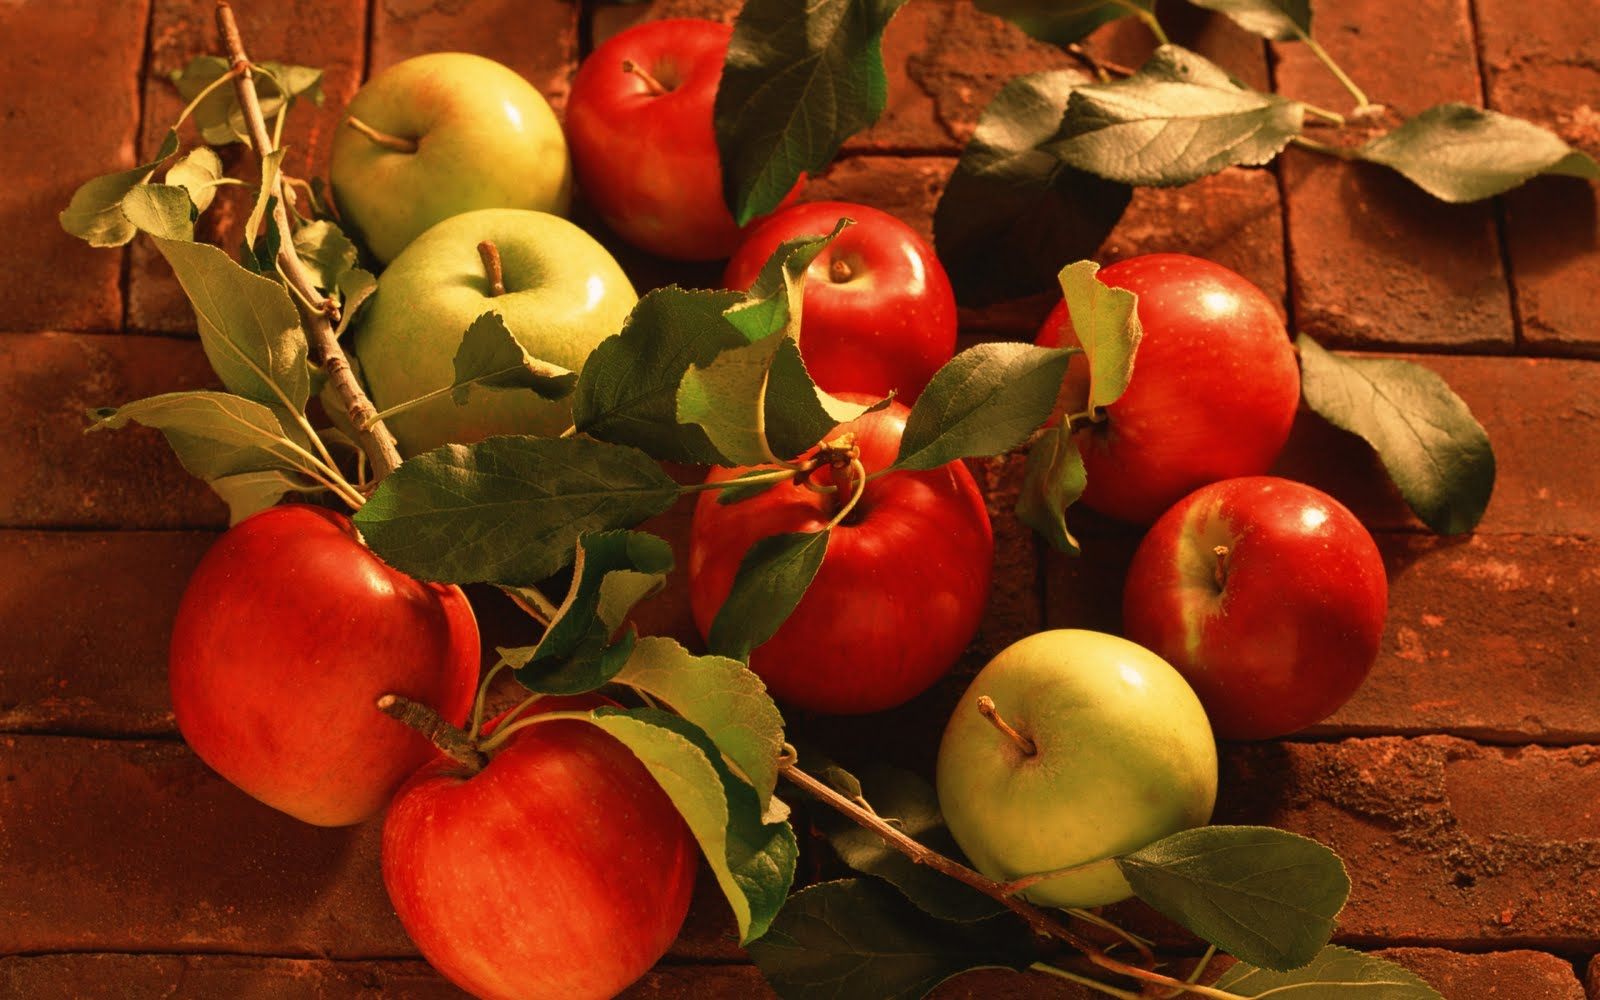 Manzanas verdes y rojas | Green and Red Apples